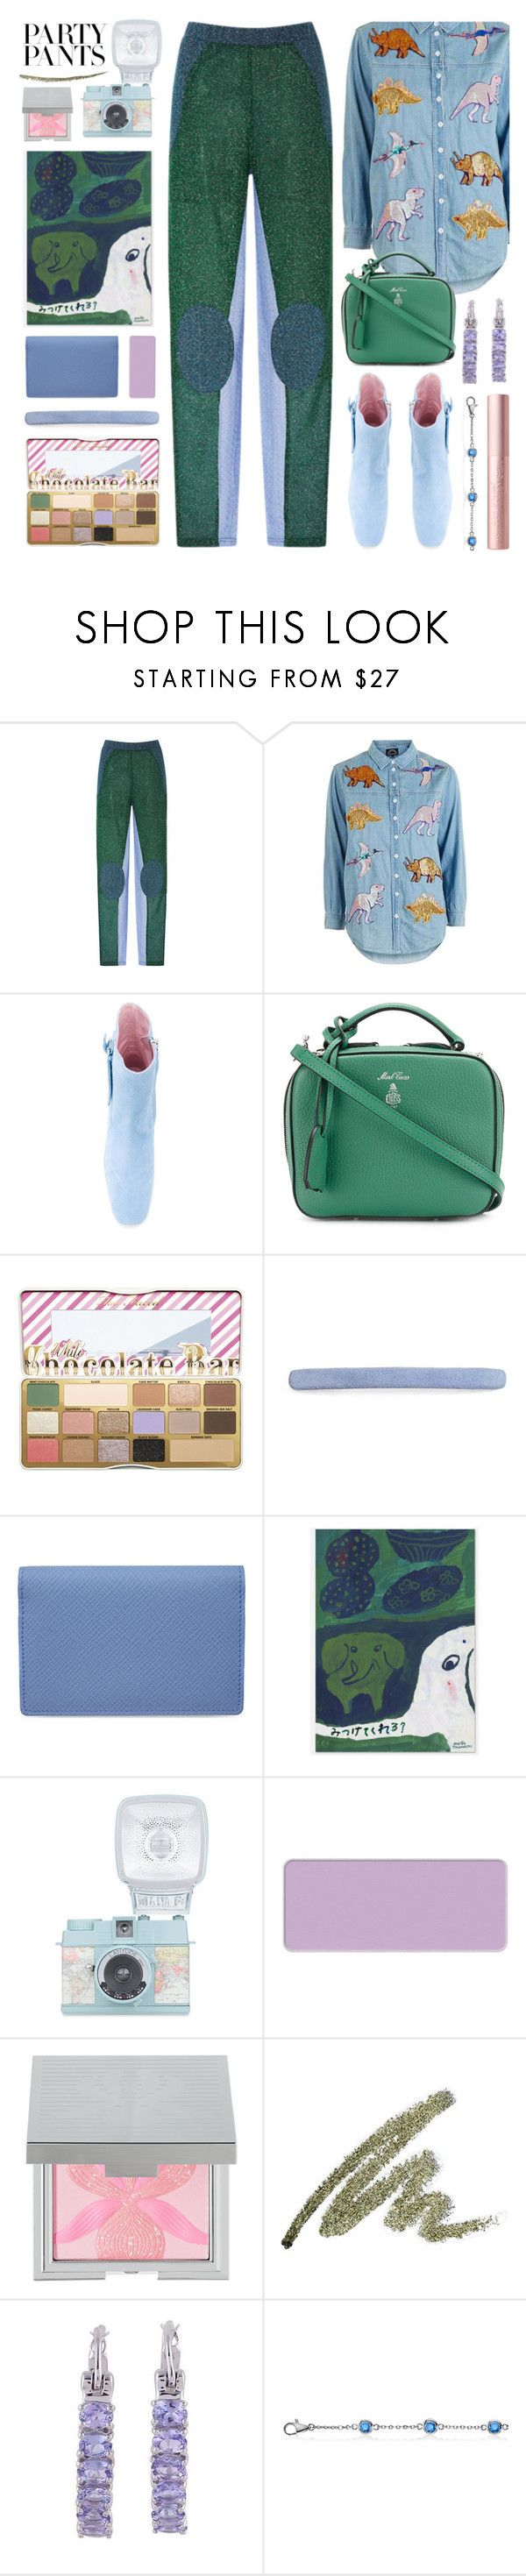 """#PolyPresents: Fancy Pants"" by foundlostme ❤ liked on Polyvore featuring Carven, Topshop, Dorateymur, Mark Cross, Too Faced Cosmetics, L. Erickson, Smythson, shu uemura, Sisley and NOVICA"